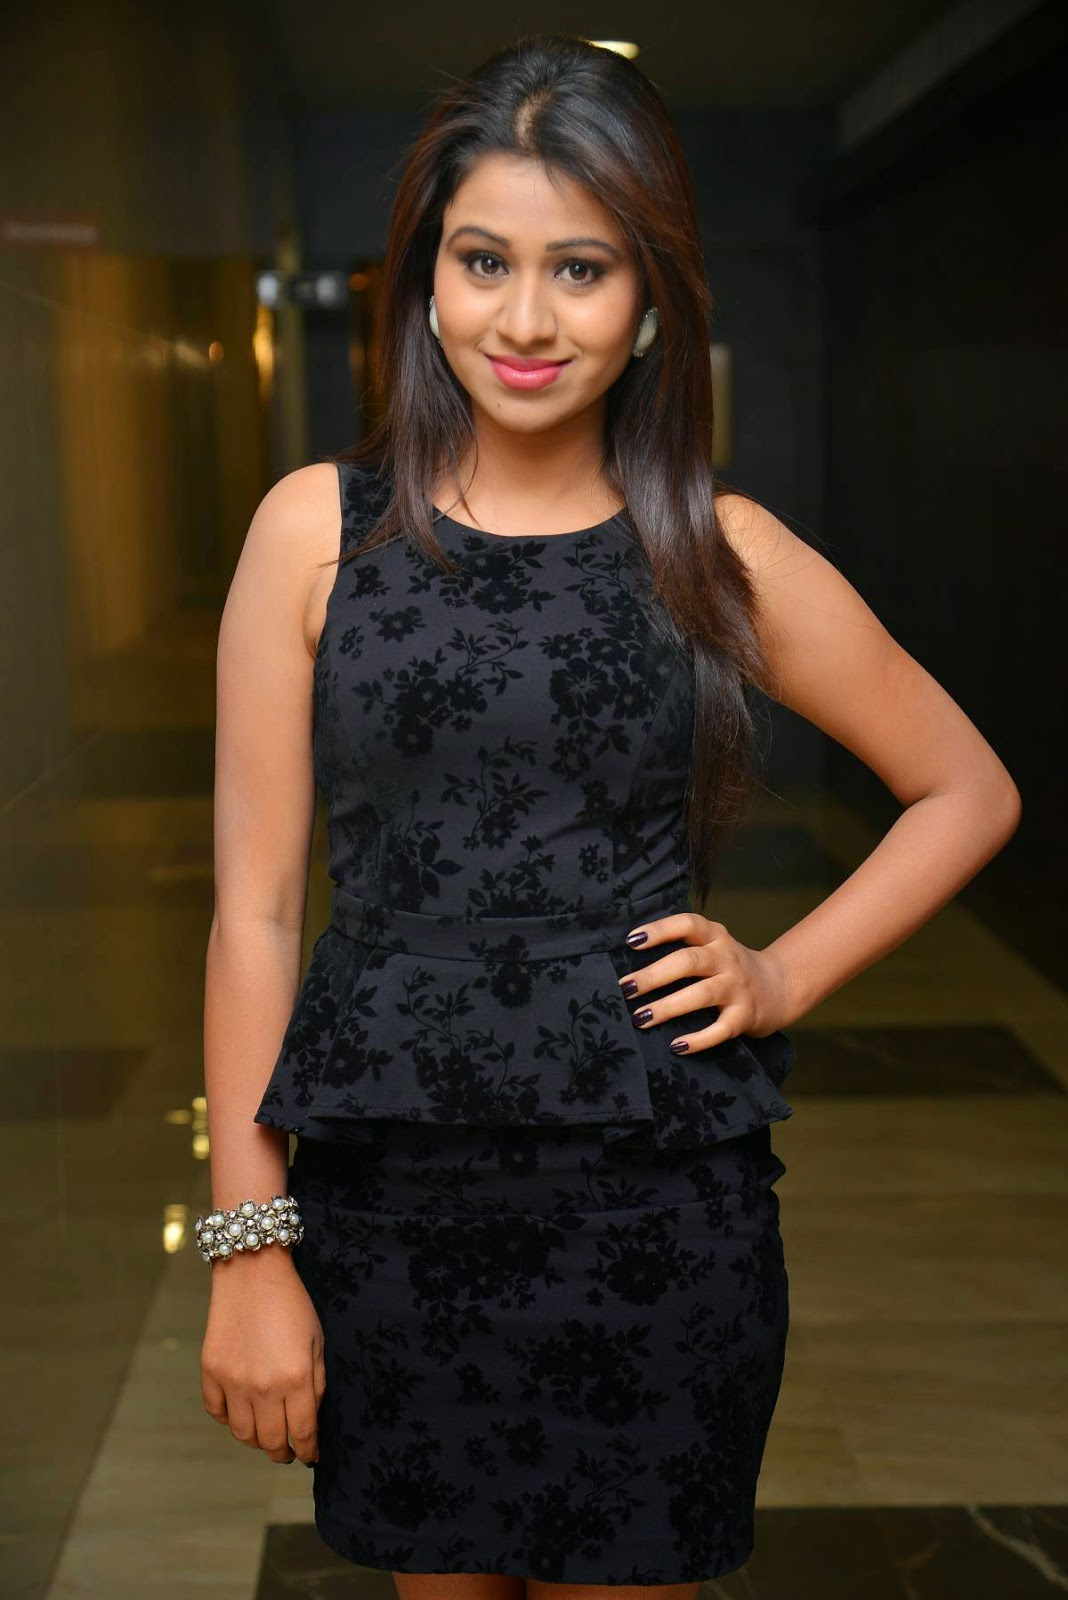 Actress Manali Rathod Latest Cute Hot Black Mini Skirt Dress Spicy Thighs Show Photos Gallery At Hyderabad Love Story Movie Audio Launch